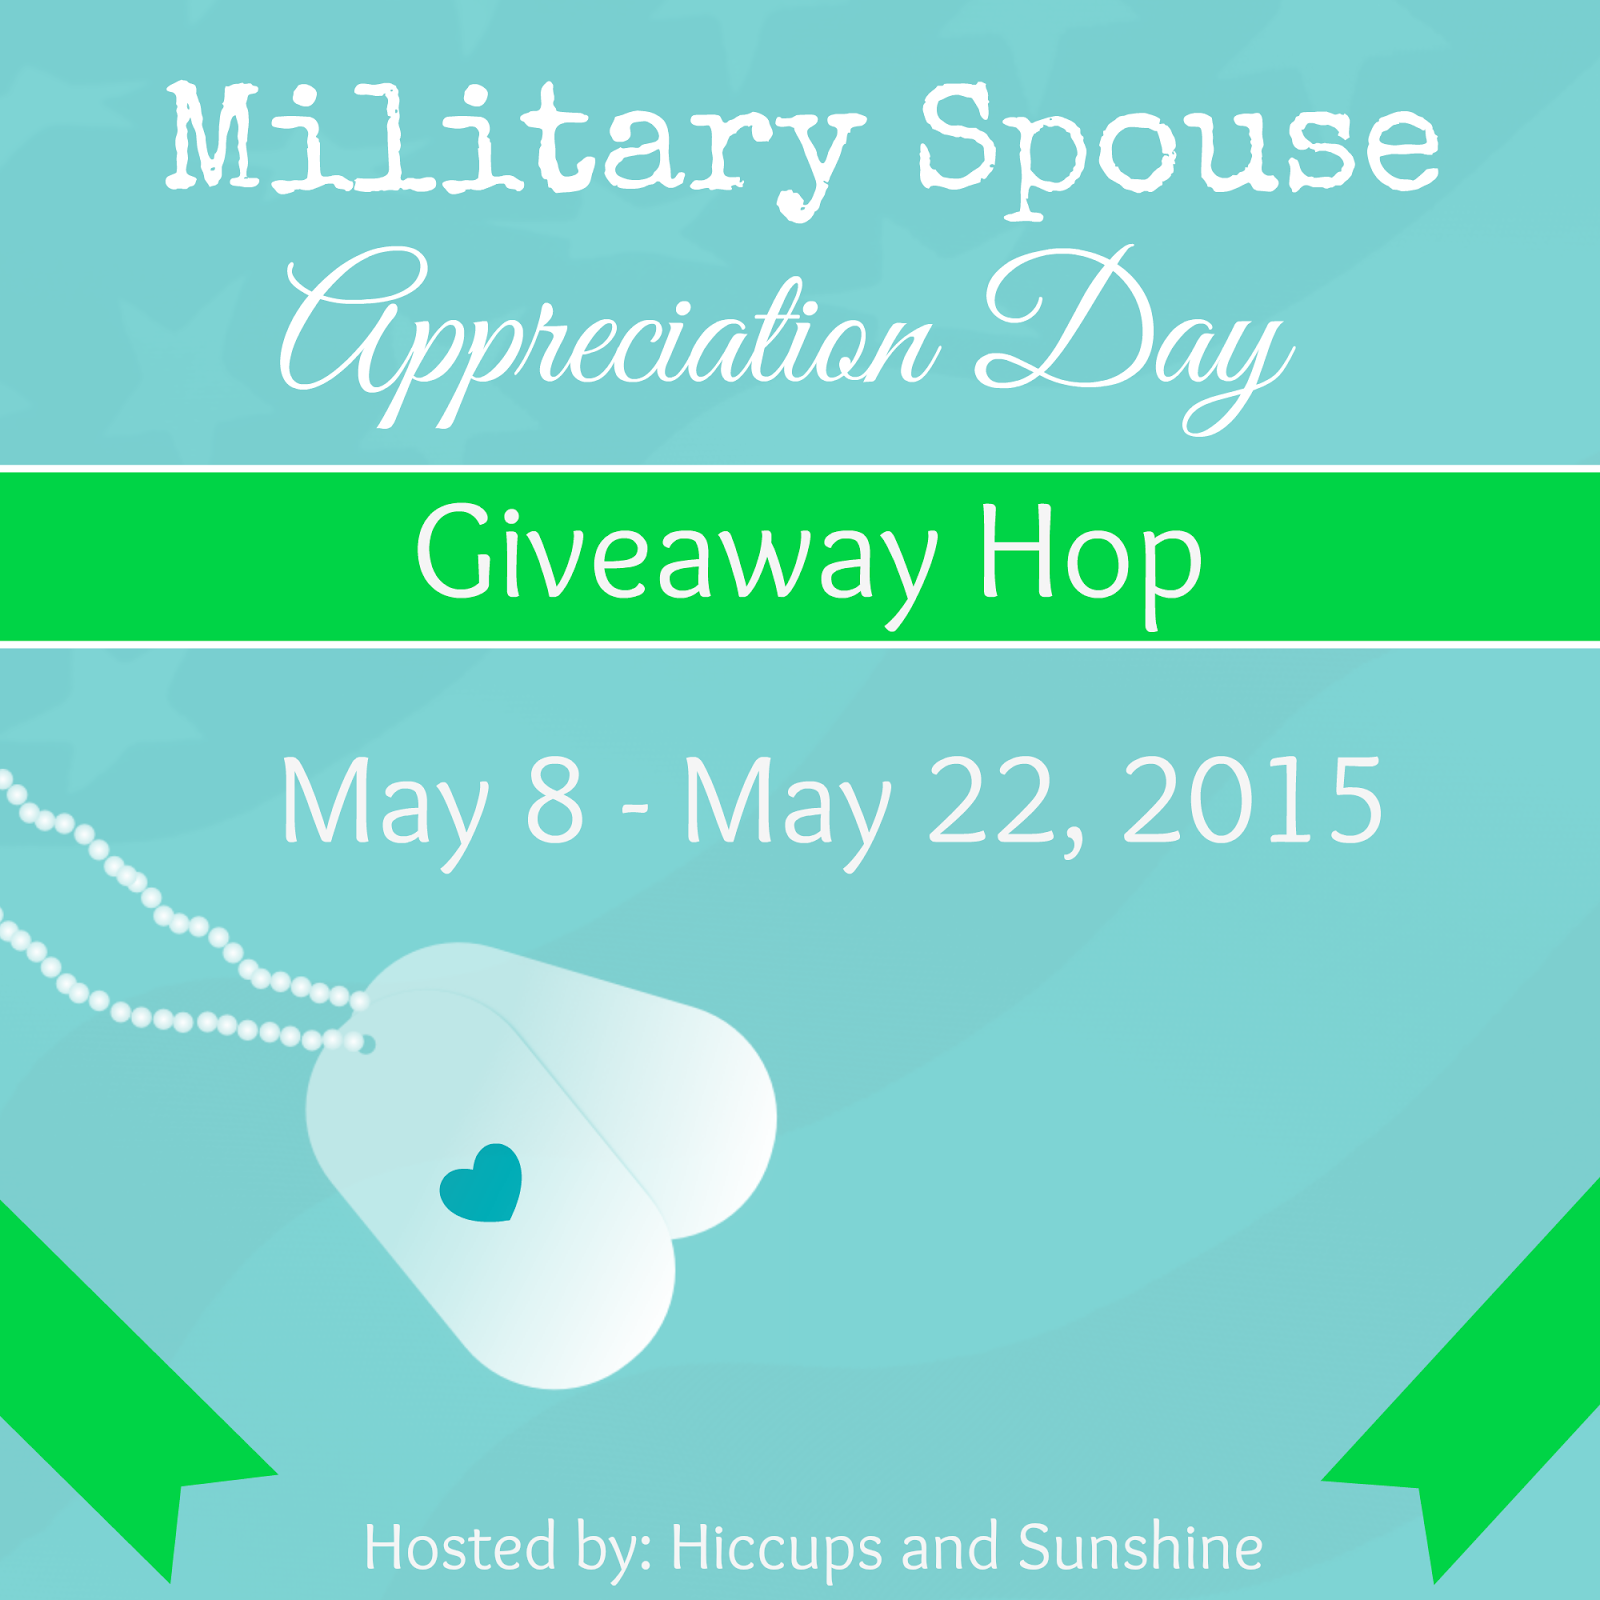 Military Spouse Appreciation